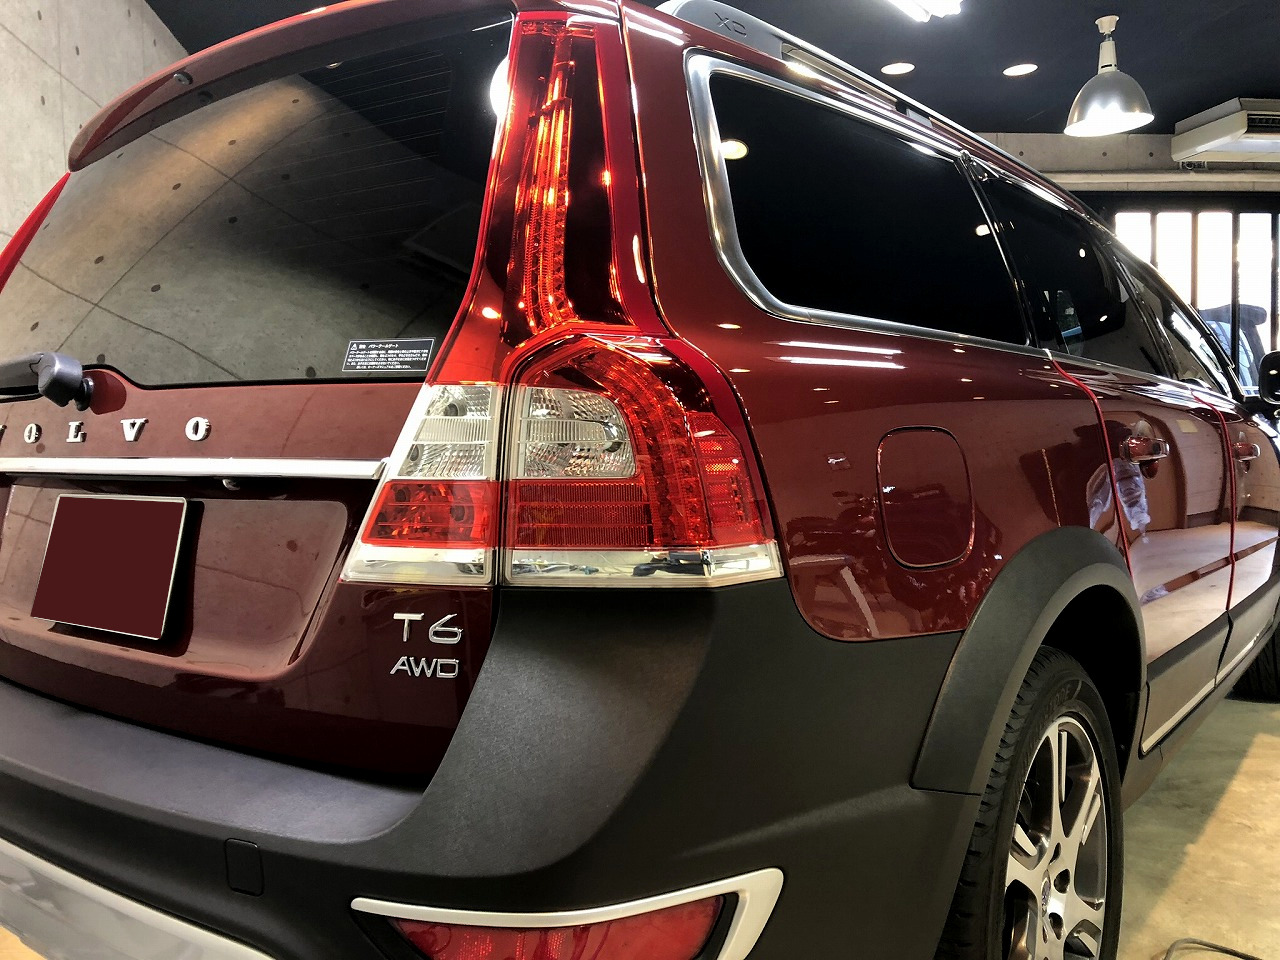 xc70_red_007